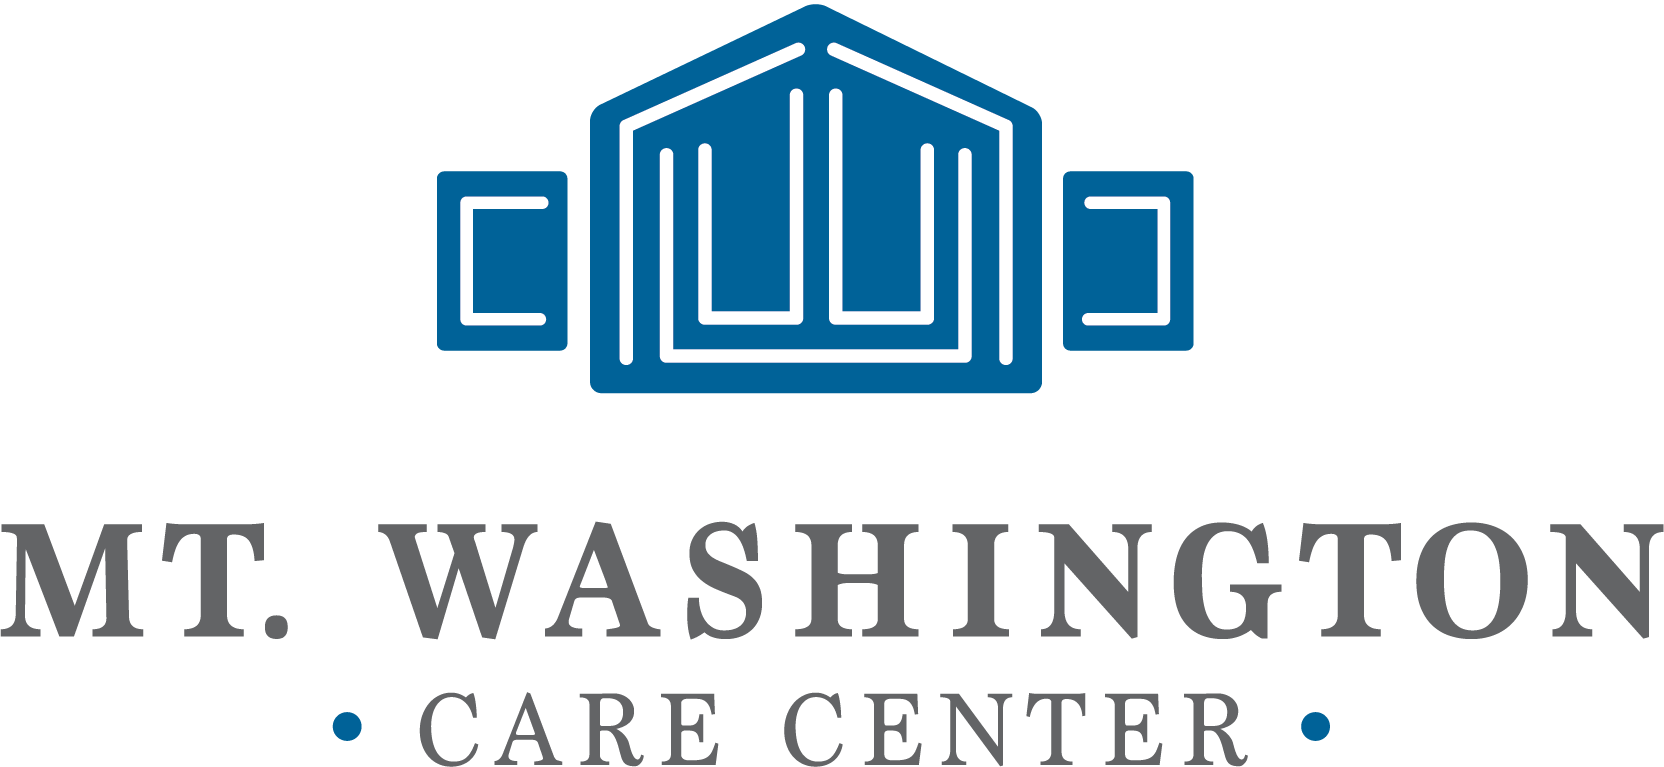 Mt. Washington Care Center